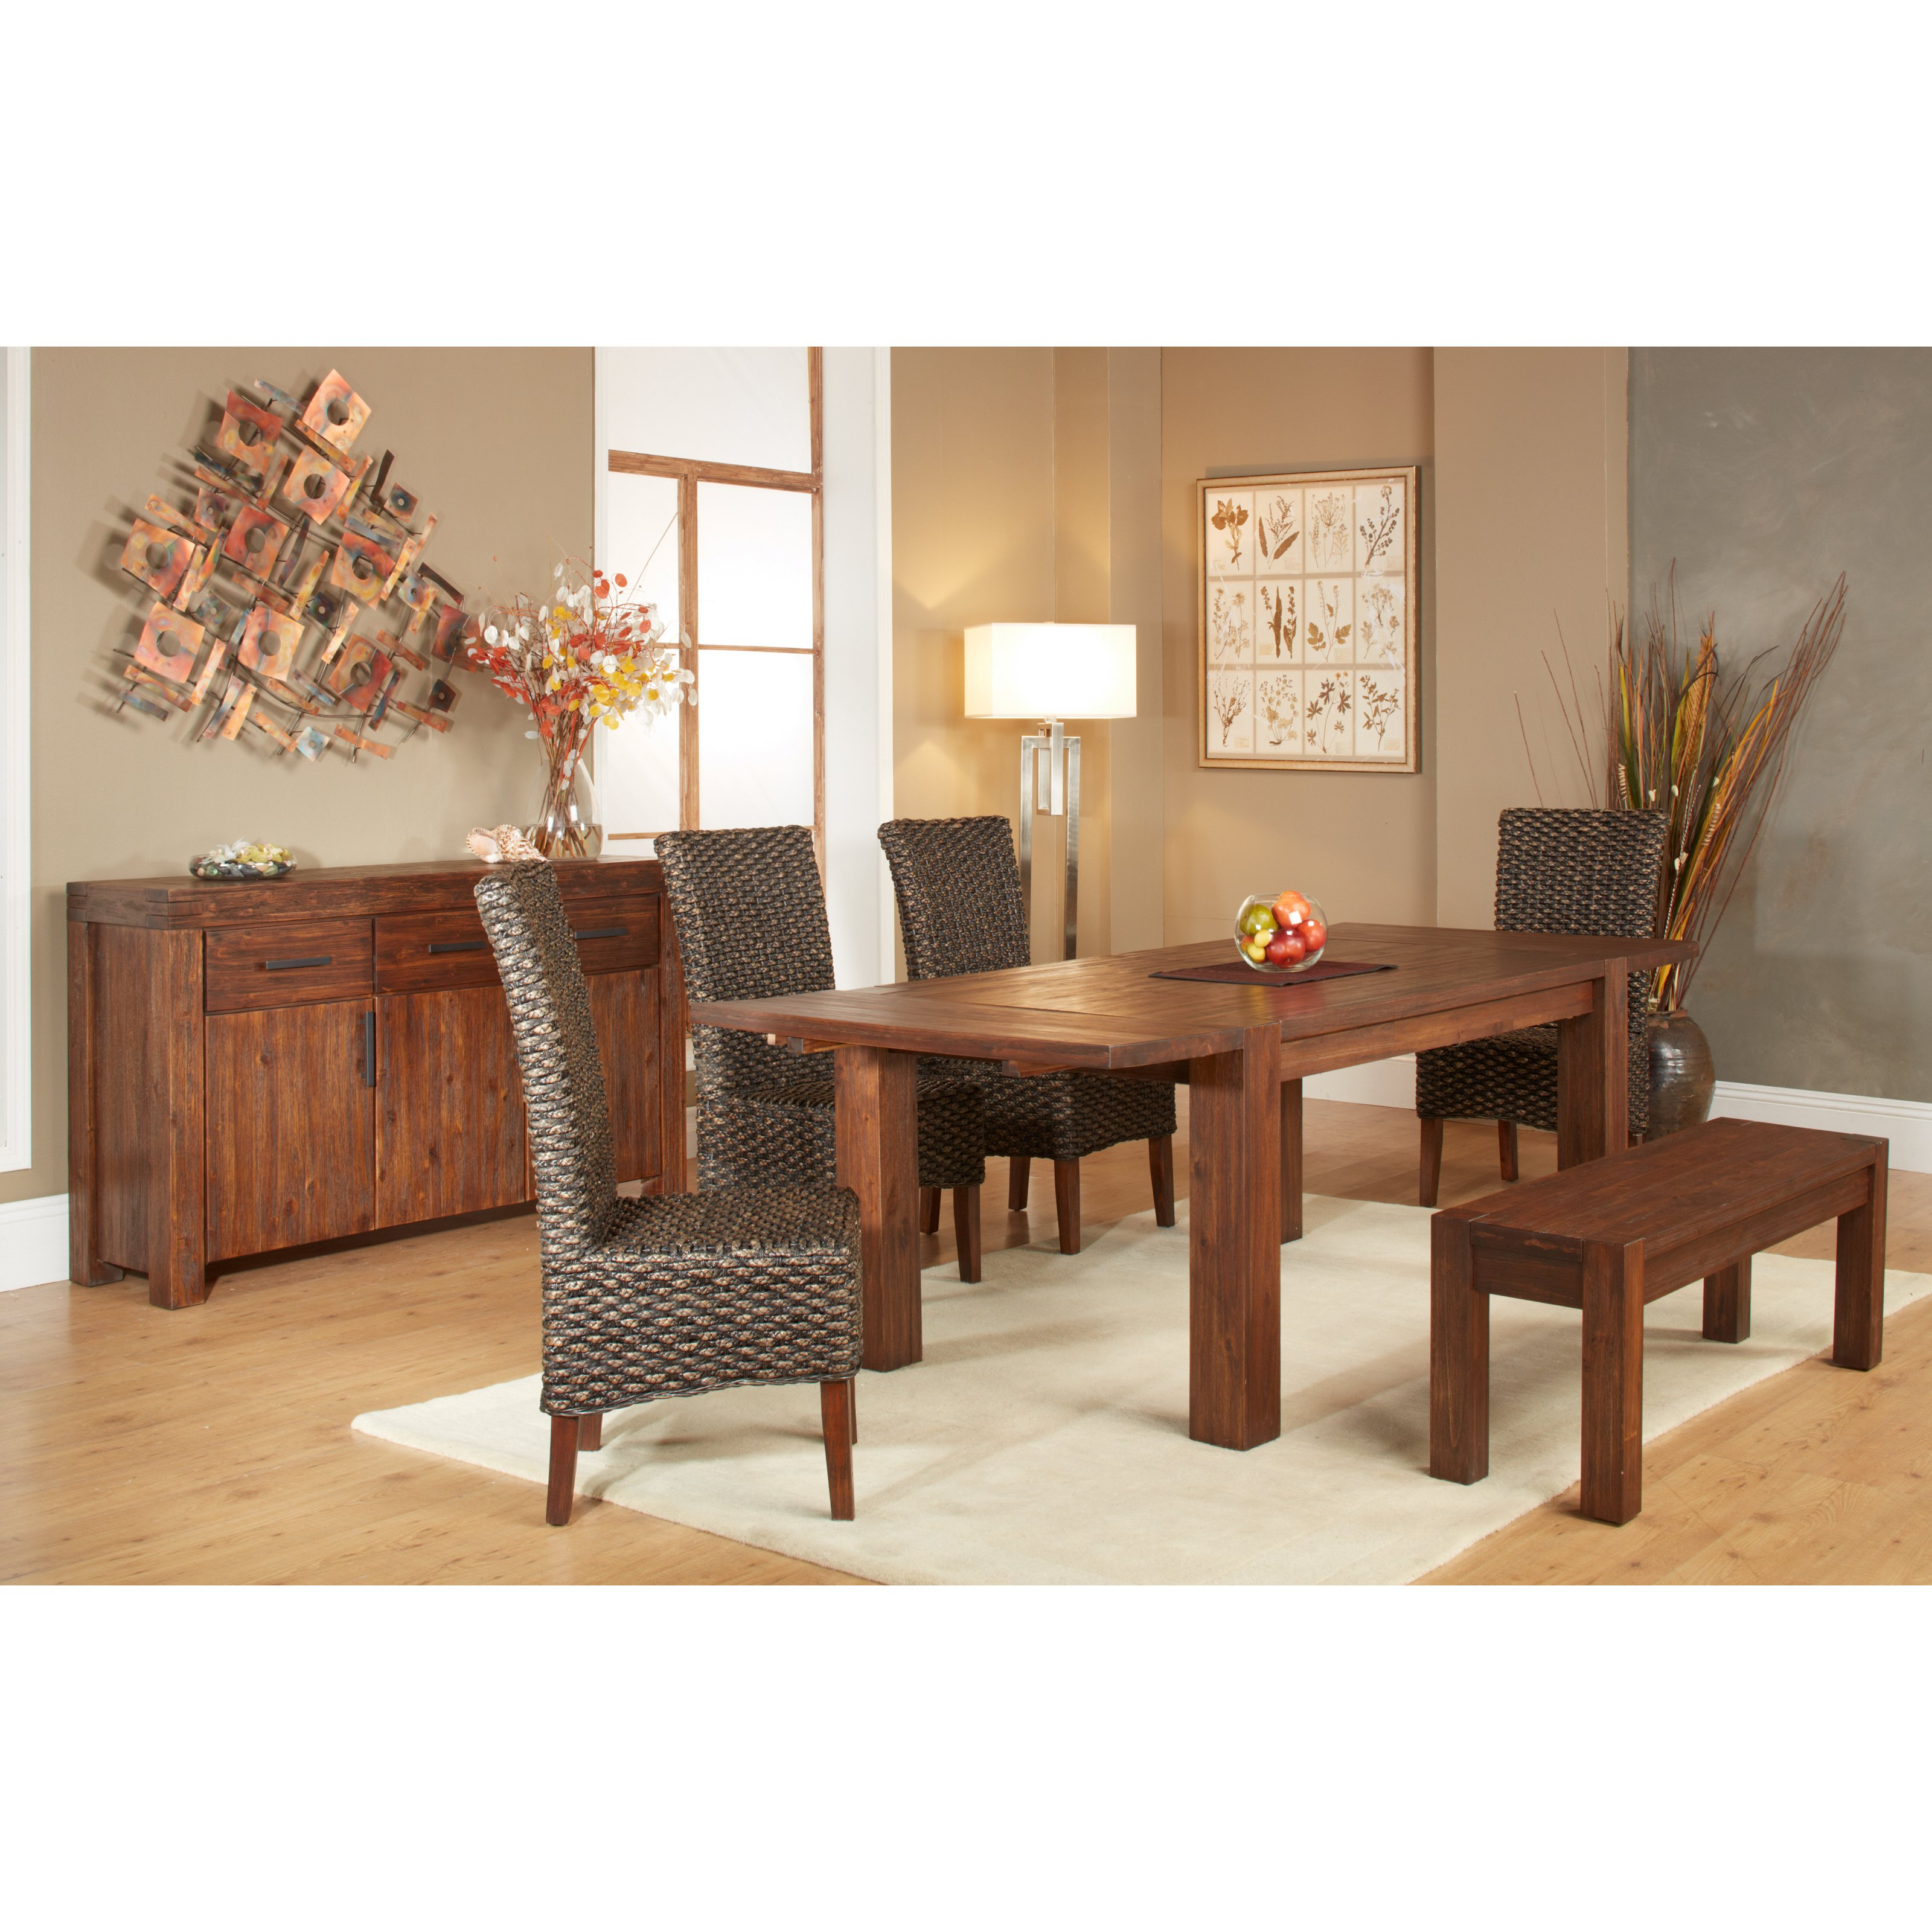 Modus 6 Piece Meadow Dining Table Set with Bench by Modus Furniture International